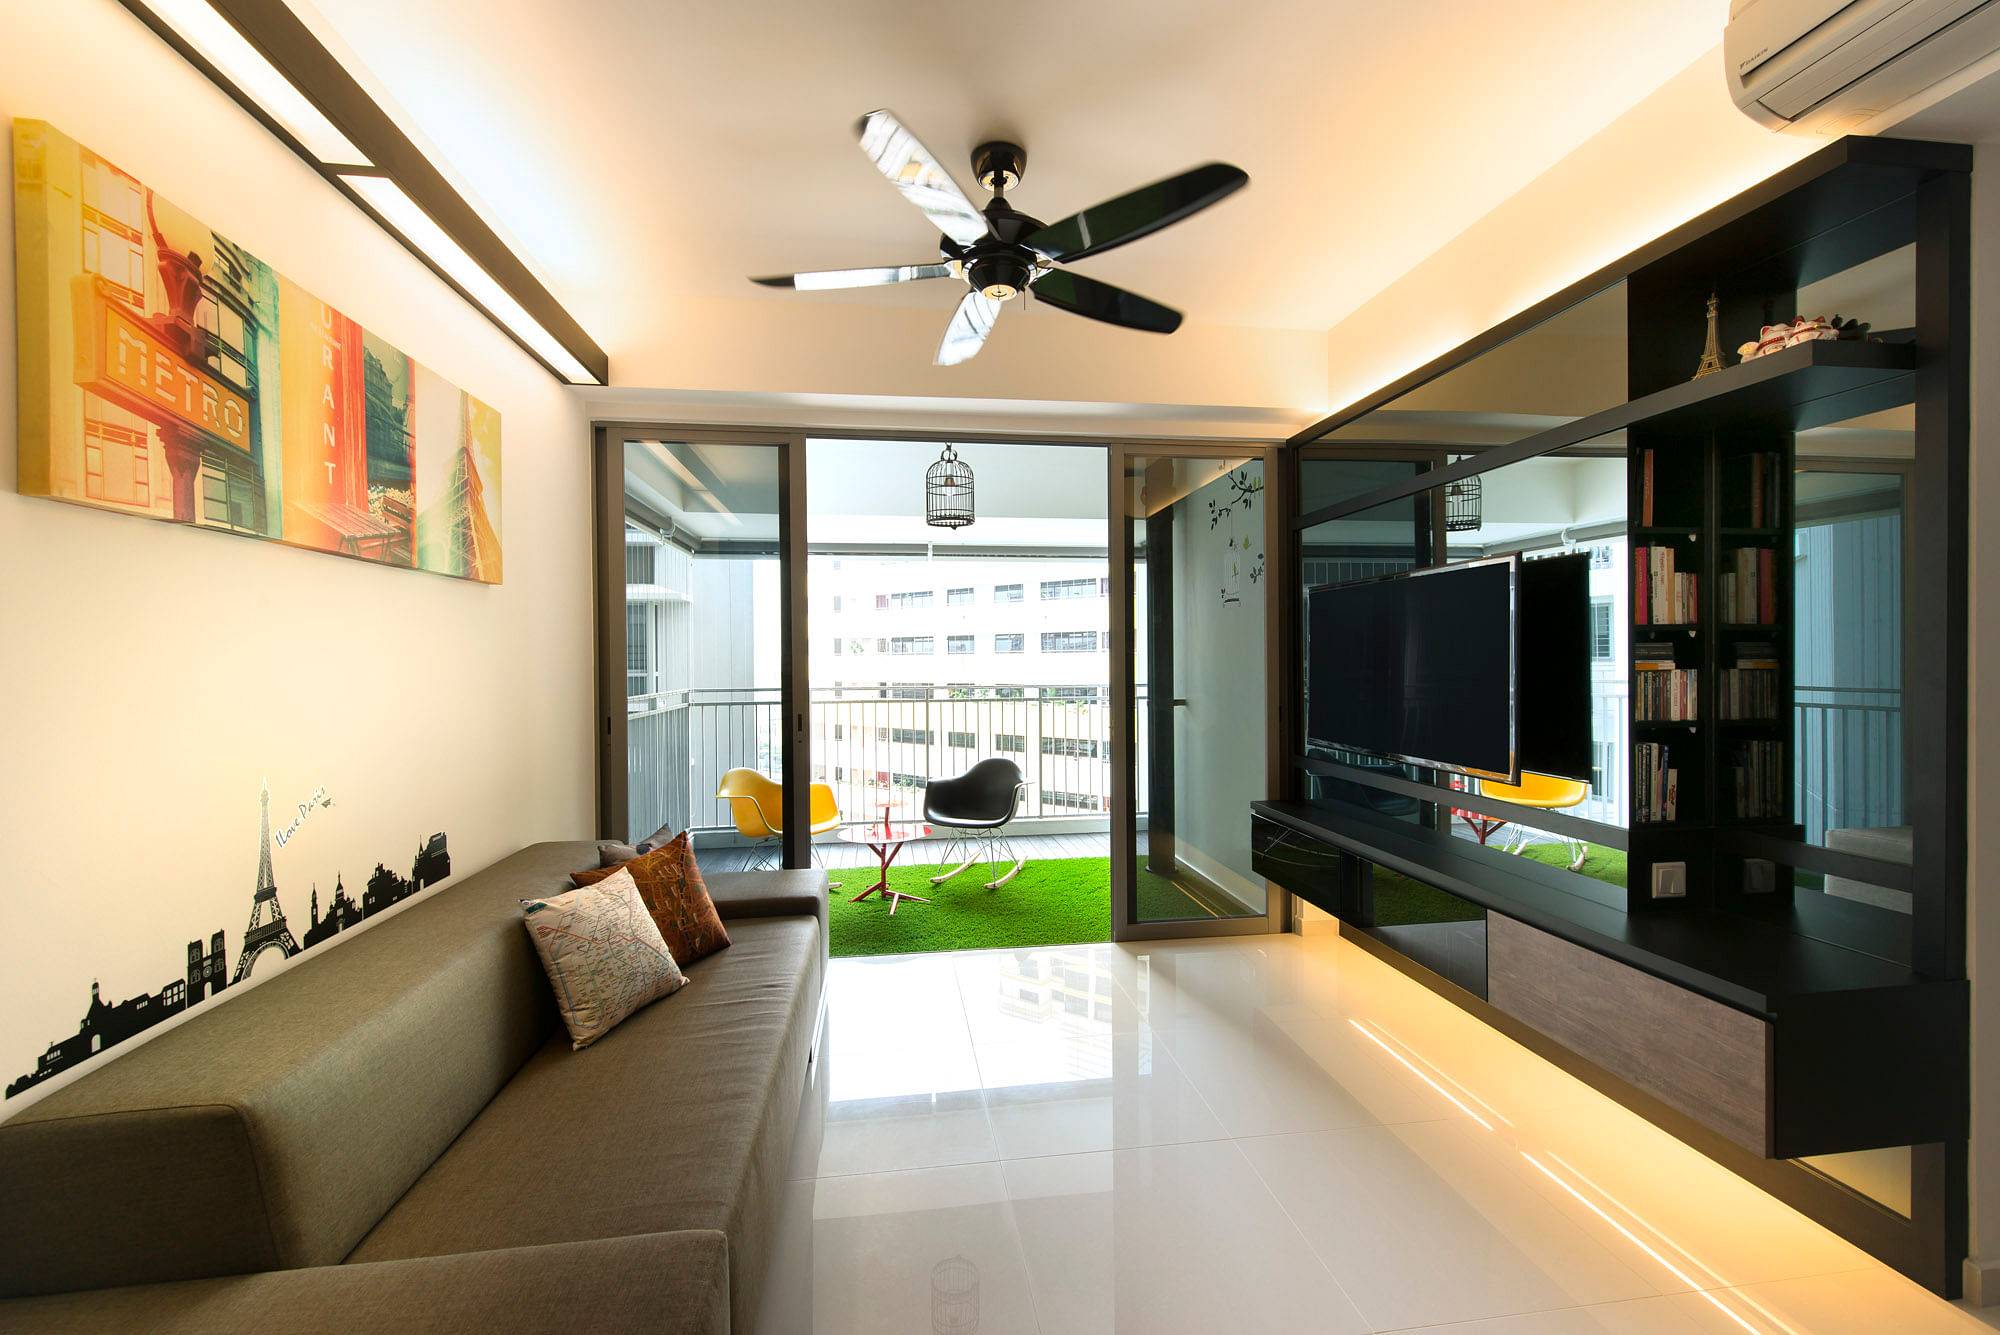 home decor ideas singapore hdb home amp decor singapore 11015